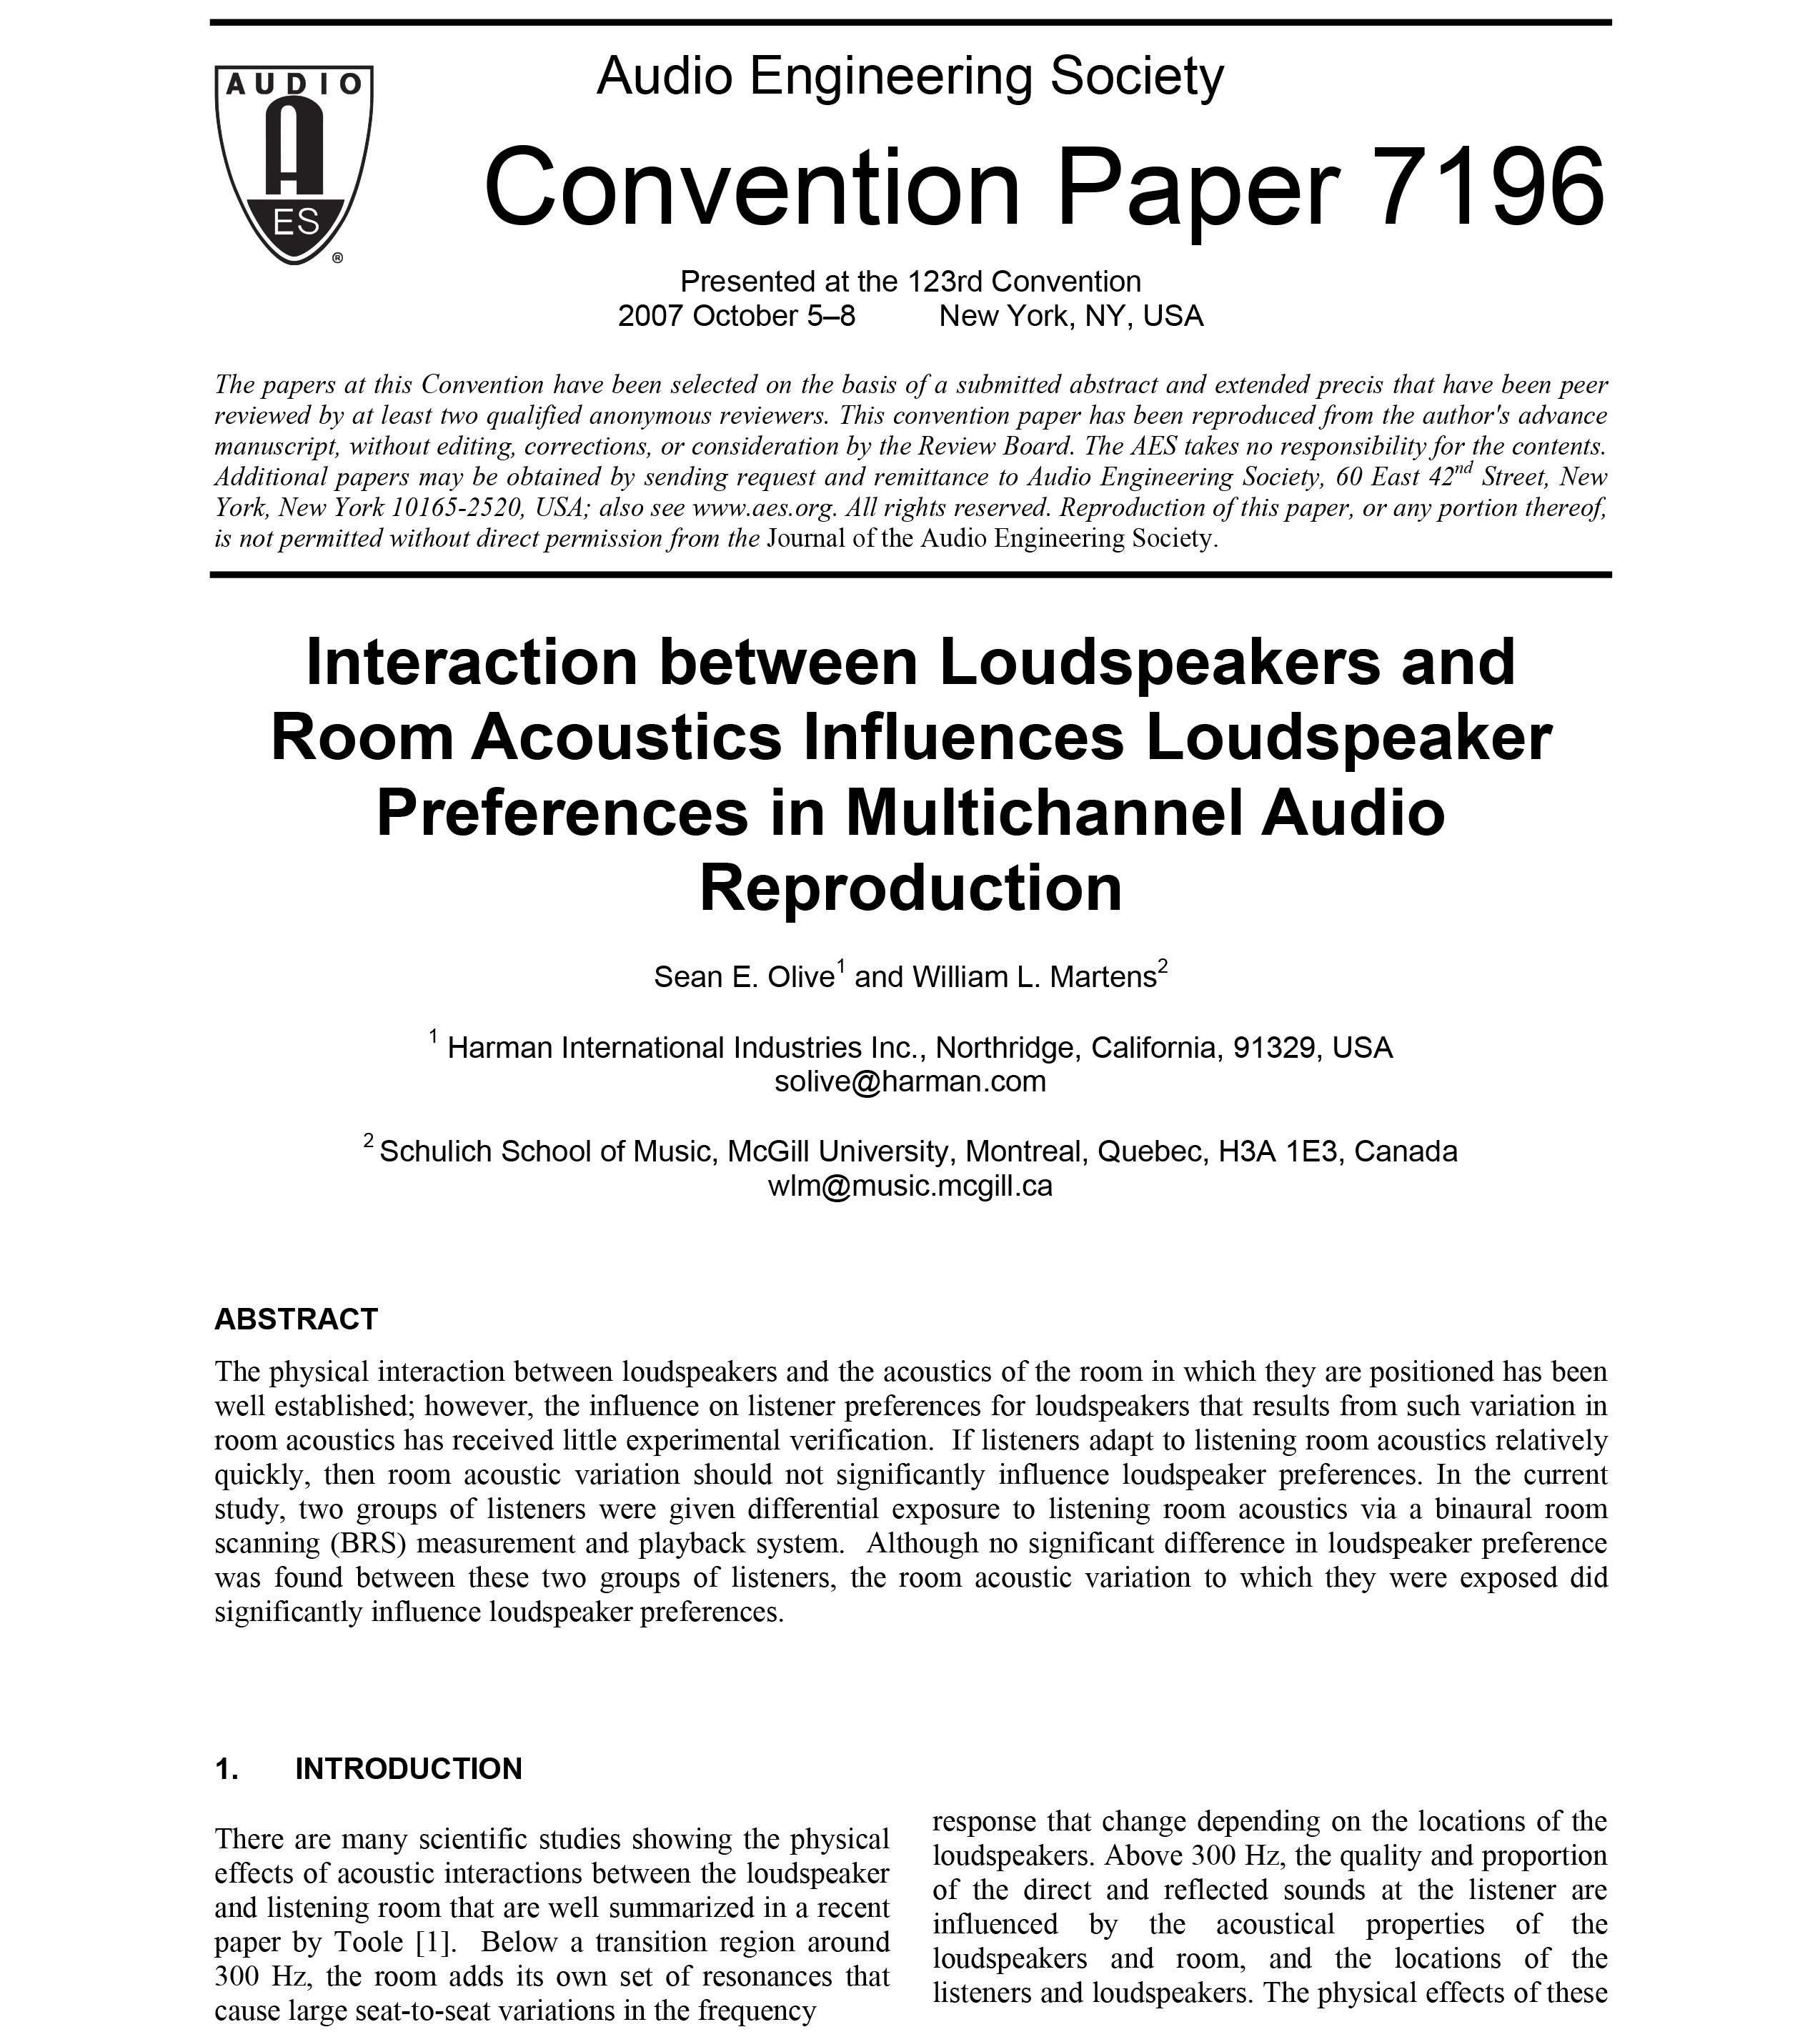 Aes E Library Interaction Between Loudspeakers And Room Acoustics Midrange Coustic Ca Sp 300 Mid Influences Loudspeaker Preferences In Multichannel Audio Reproduction